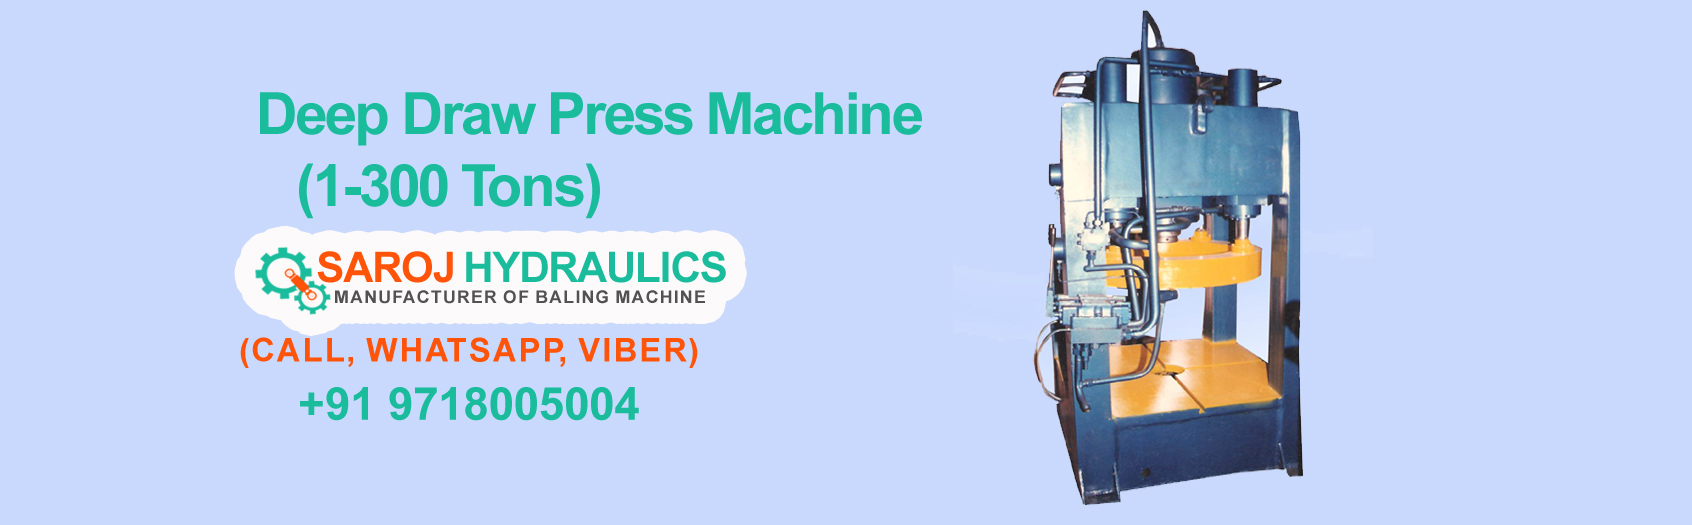 manufacturer baling press,Baling machine,hydraulic baling press,baler,hydraulic baling machine,baling press machine,bale press machine,pressing machine(INDIA)